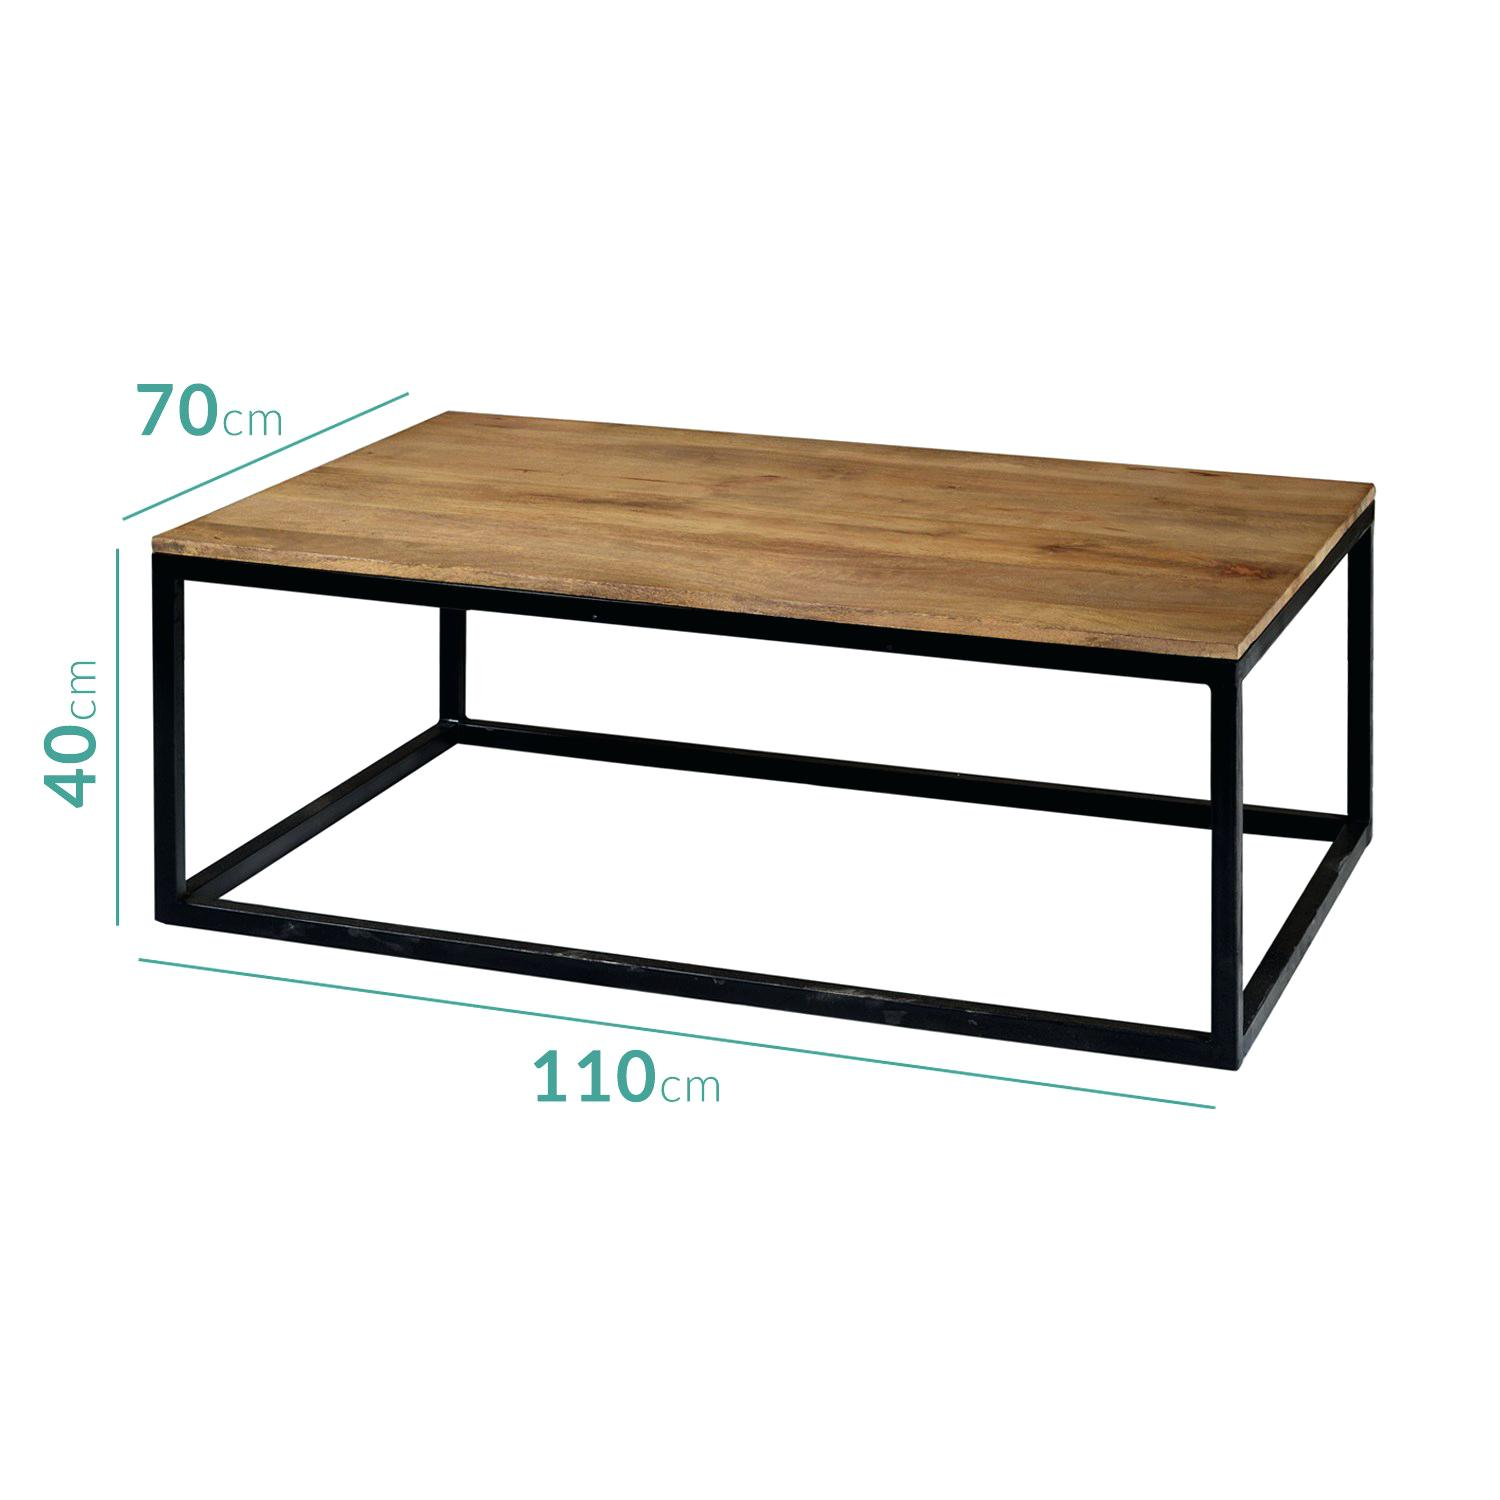 gold accent furniture the outrageous amazing mango wood end table suri console industrial rectangular and metal coffee small iron square glass skinny wrought living room tables